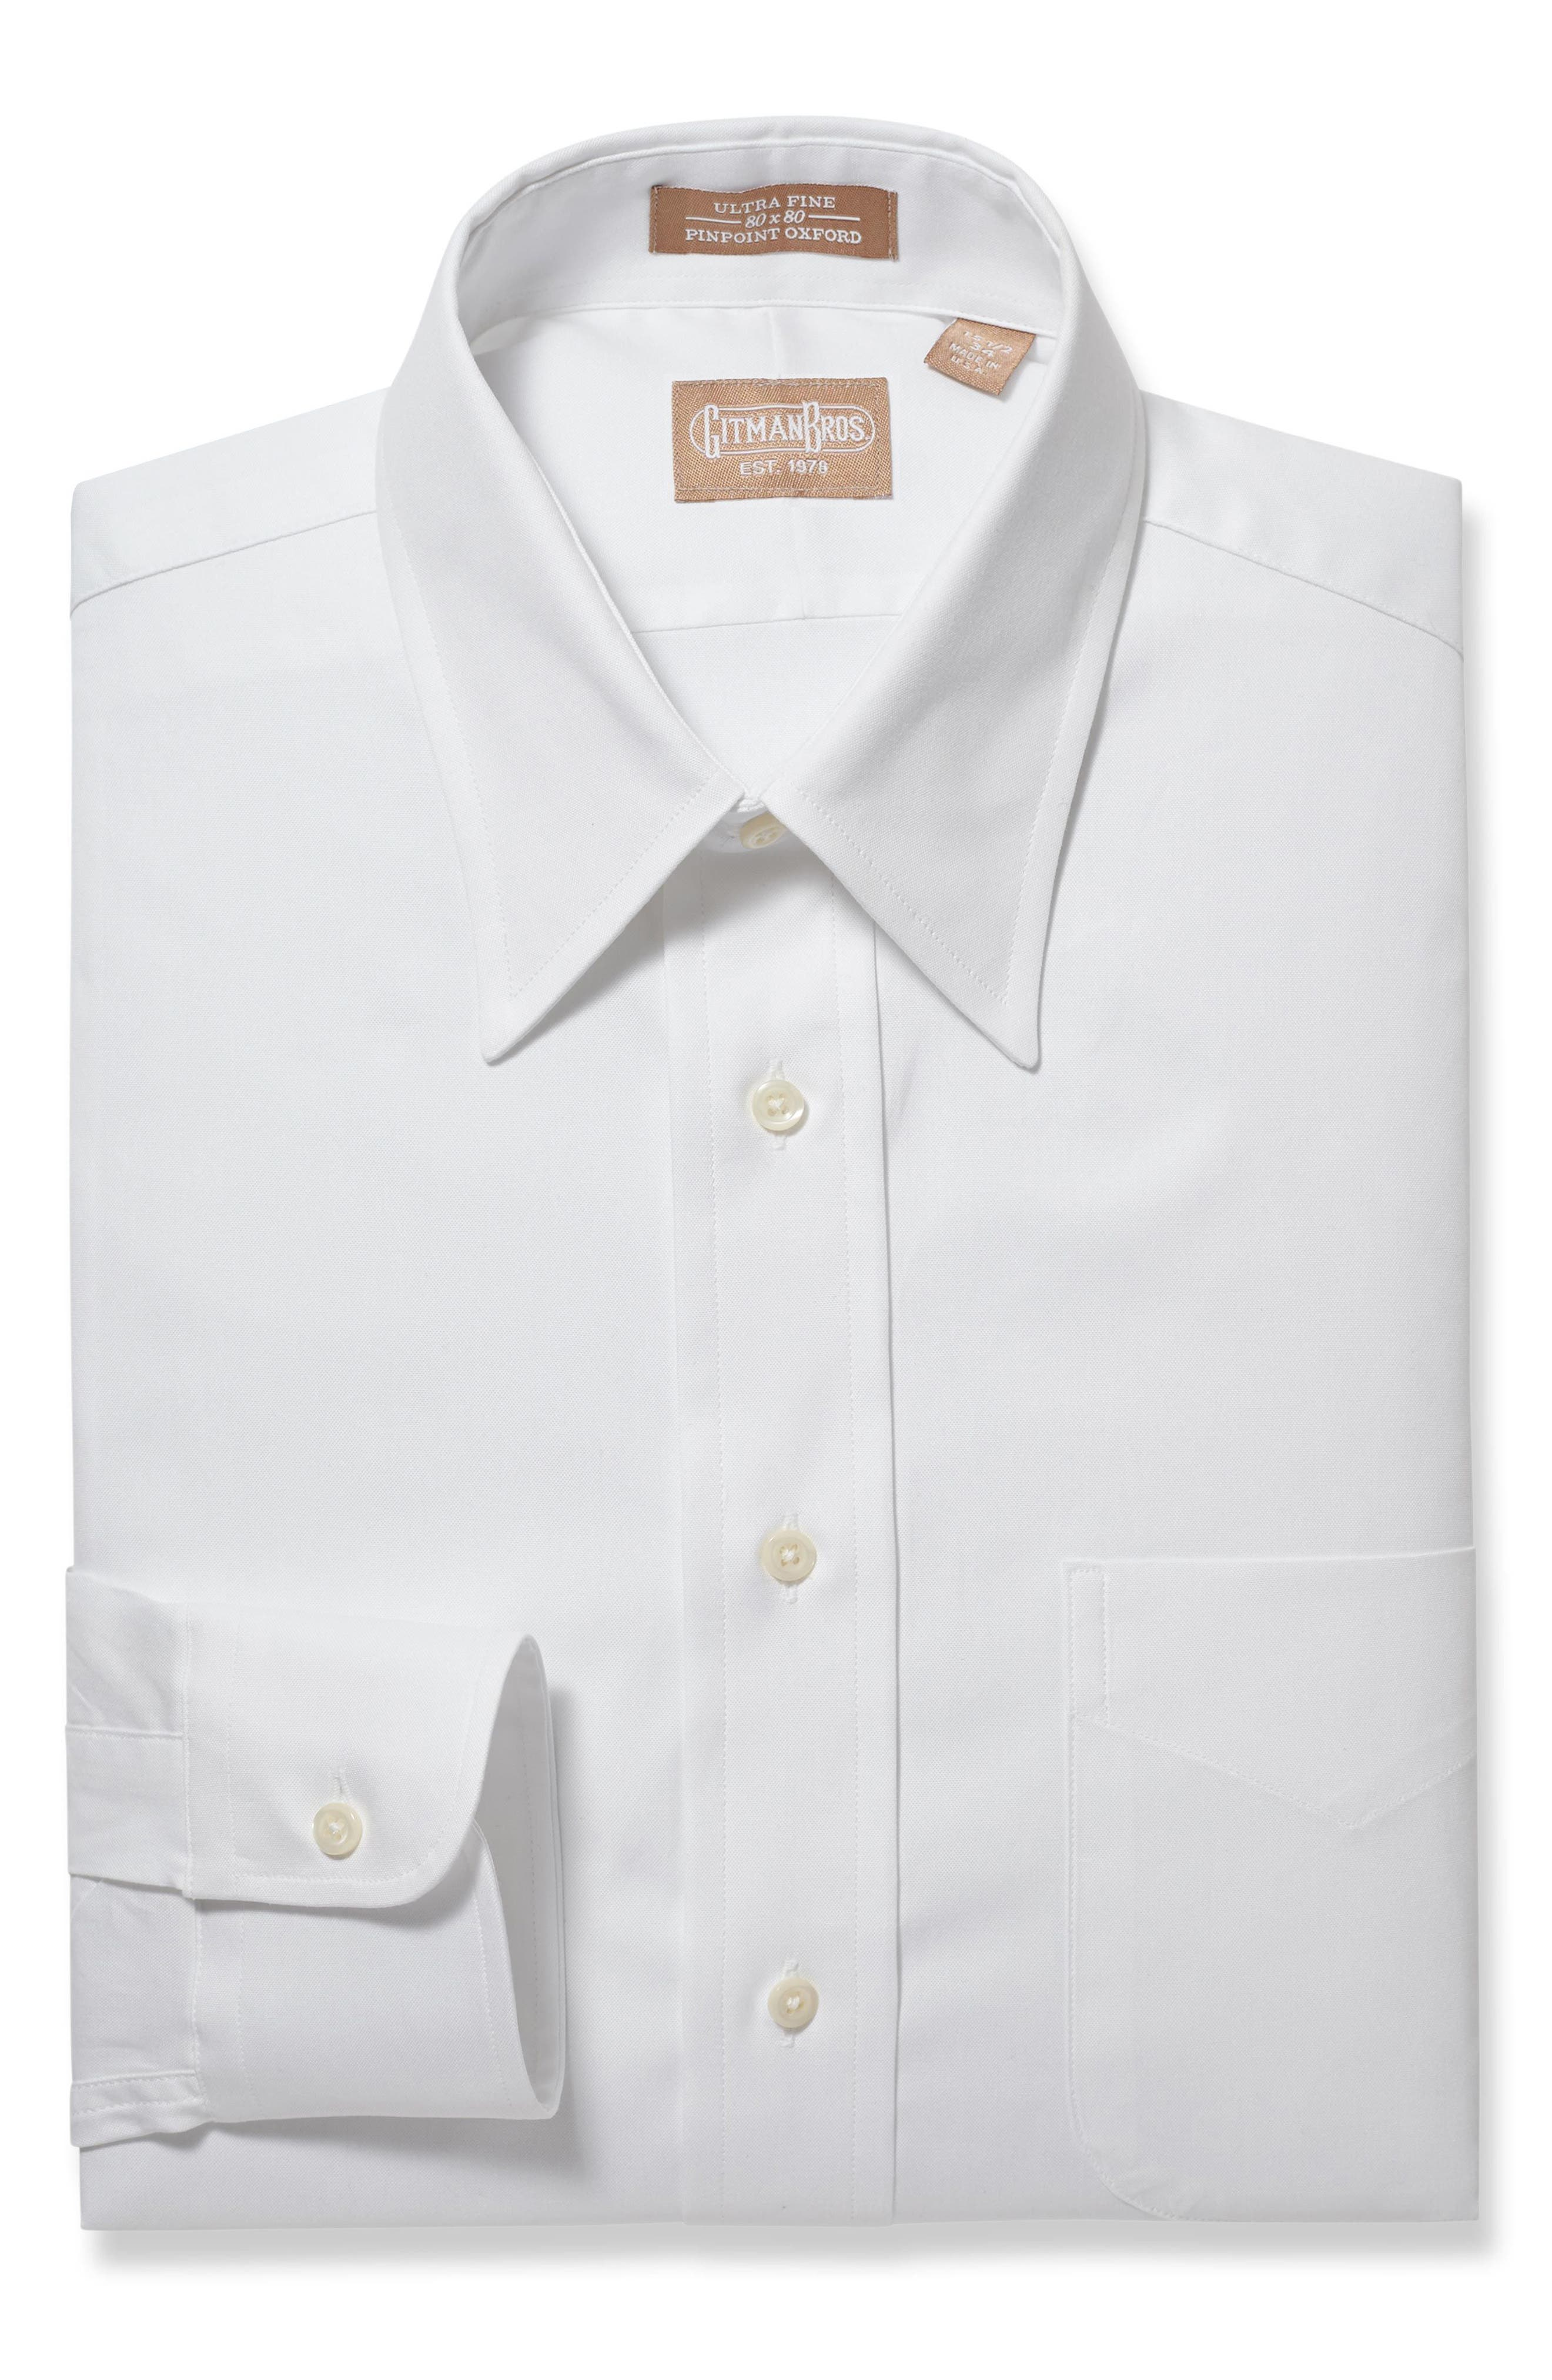 GITMAN Regular Fit Solid Dress Shirt, Main, color, WHITE